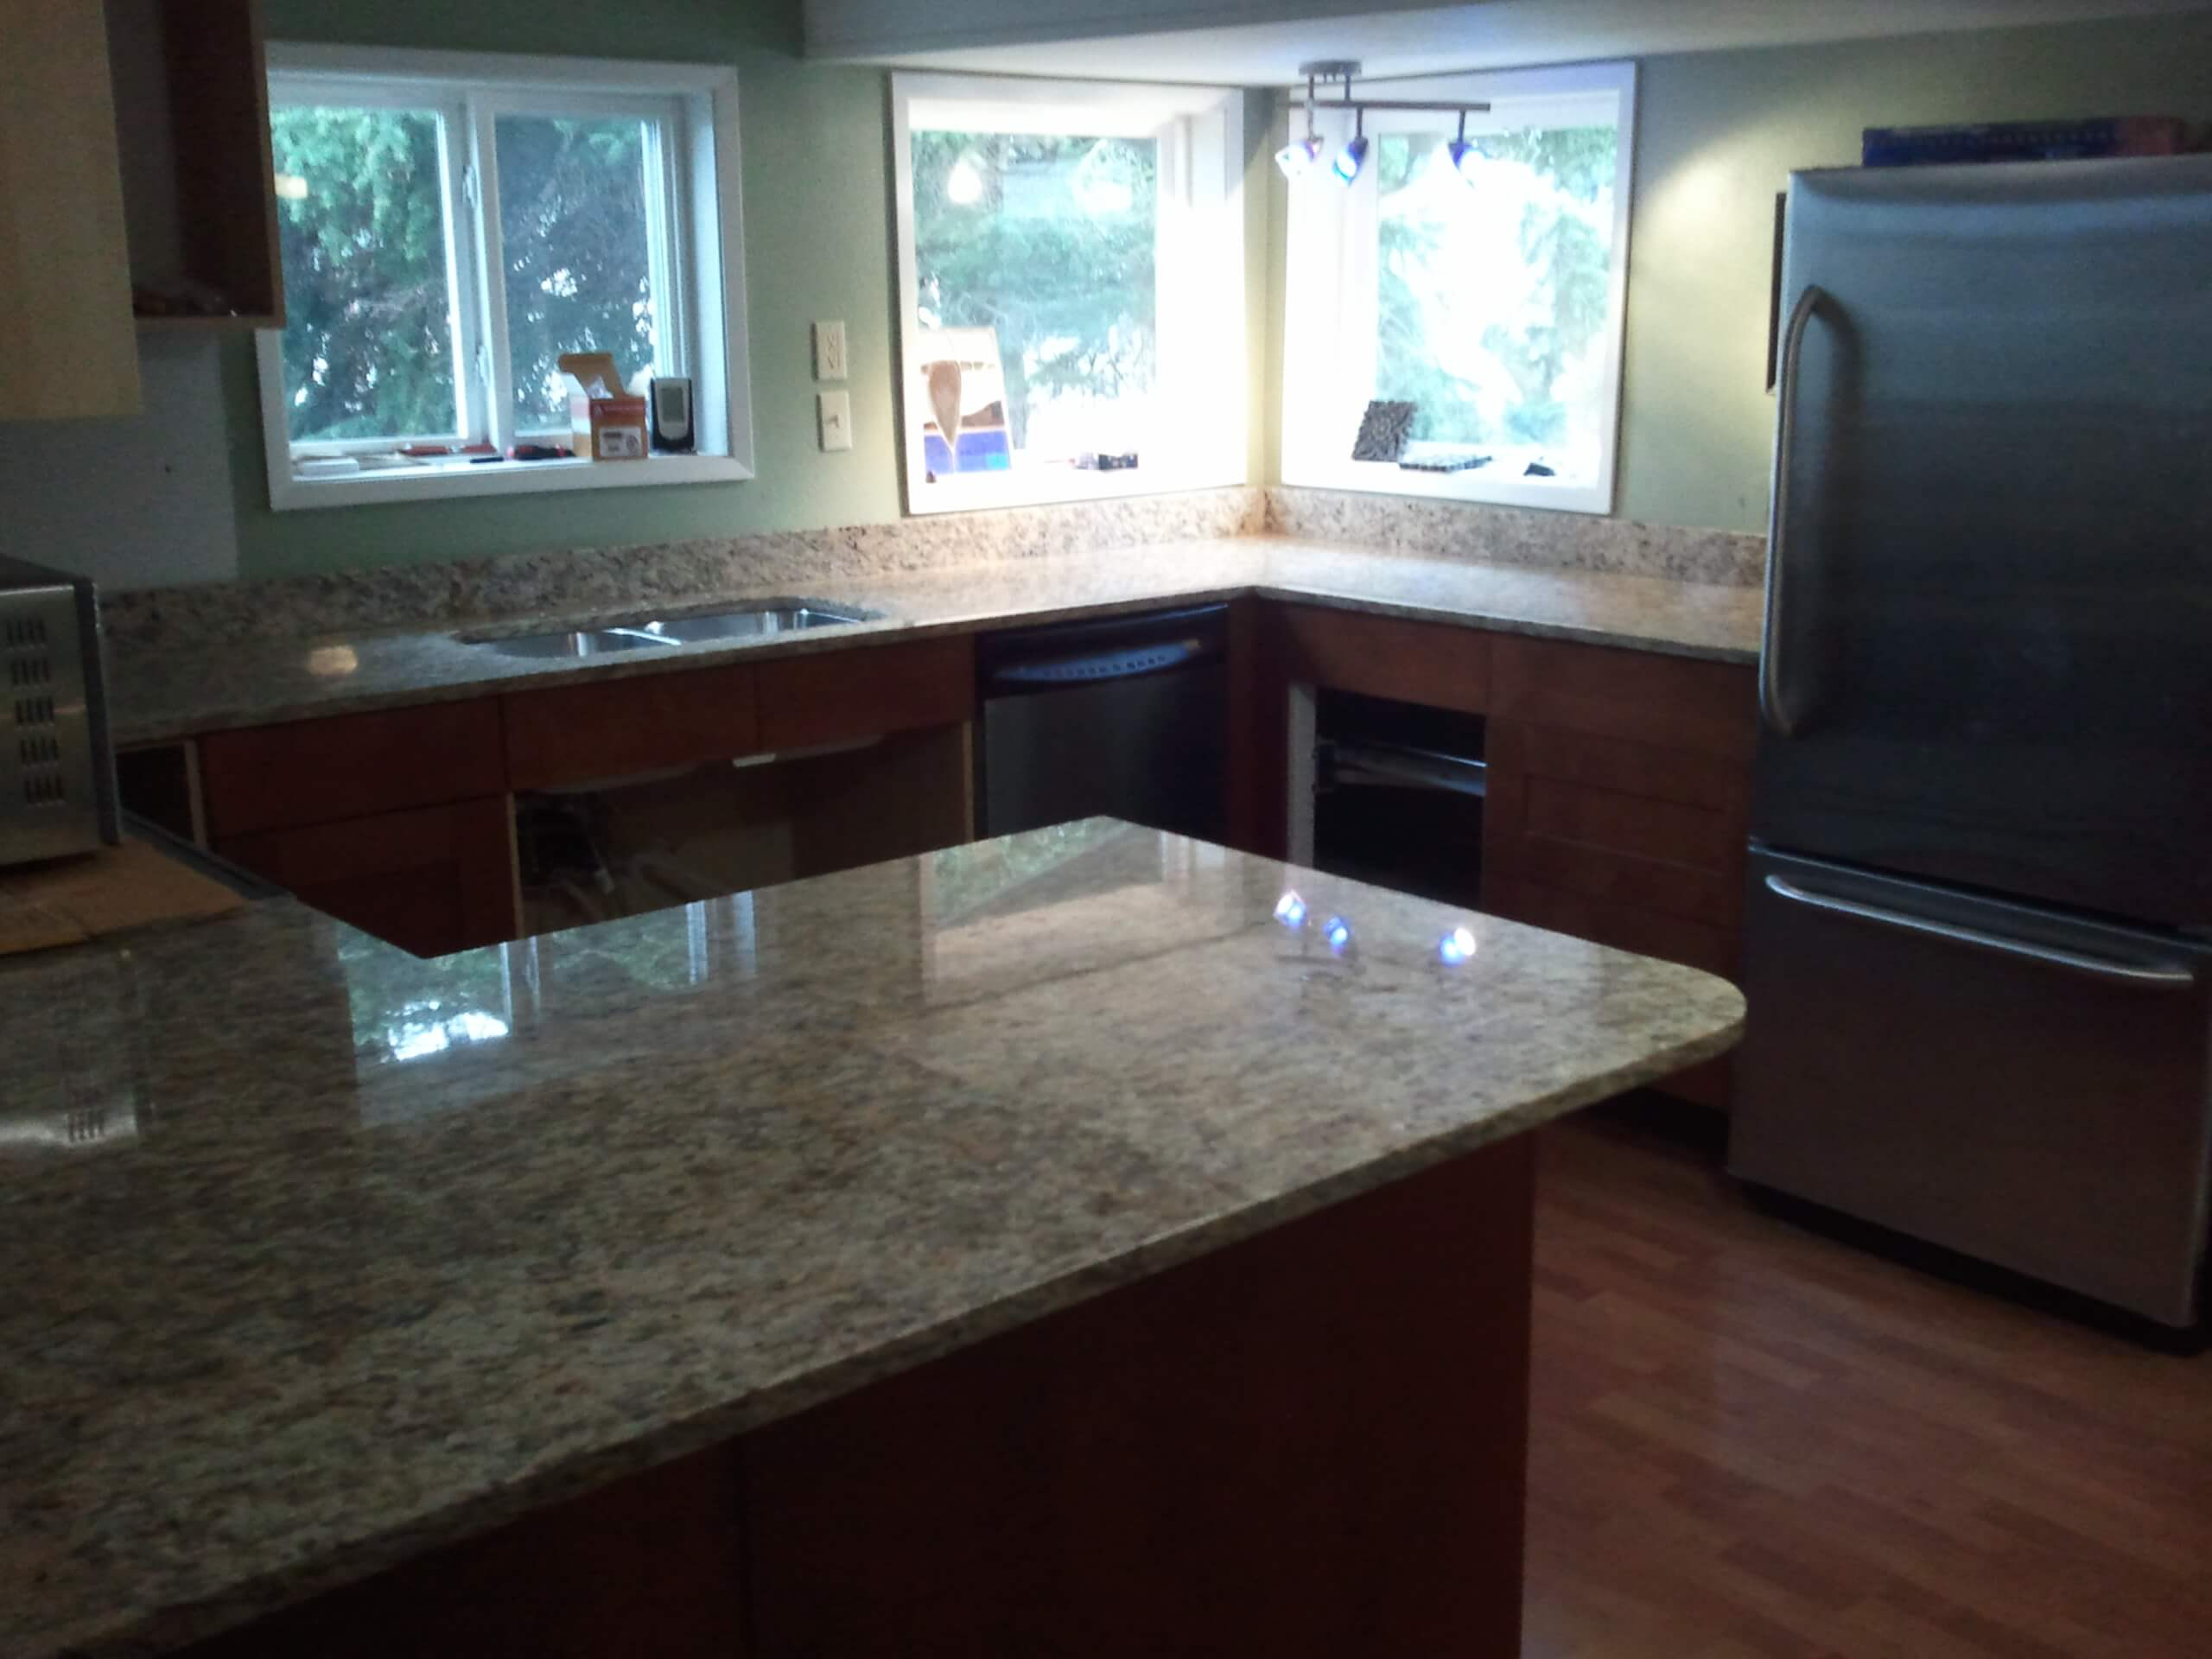 Preparing Cabinets For Granite Countertops Cleaning And Maintenance Of Your Quartz Countertops